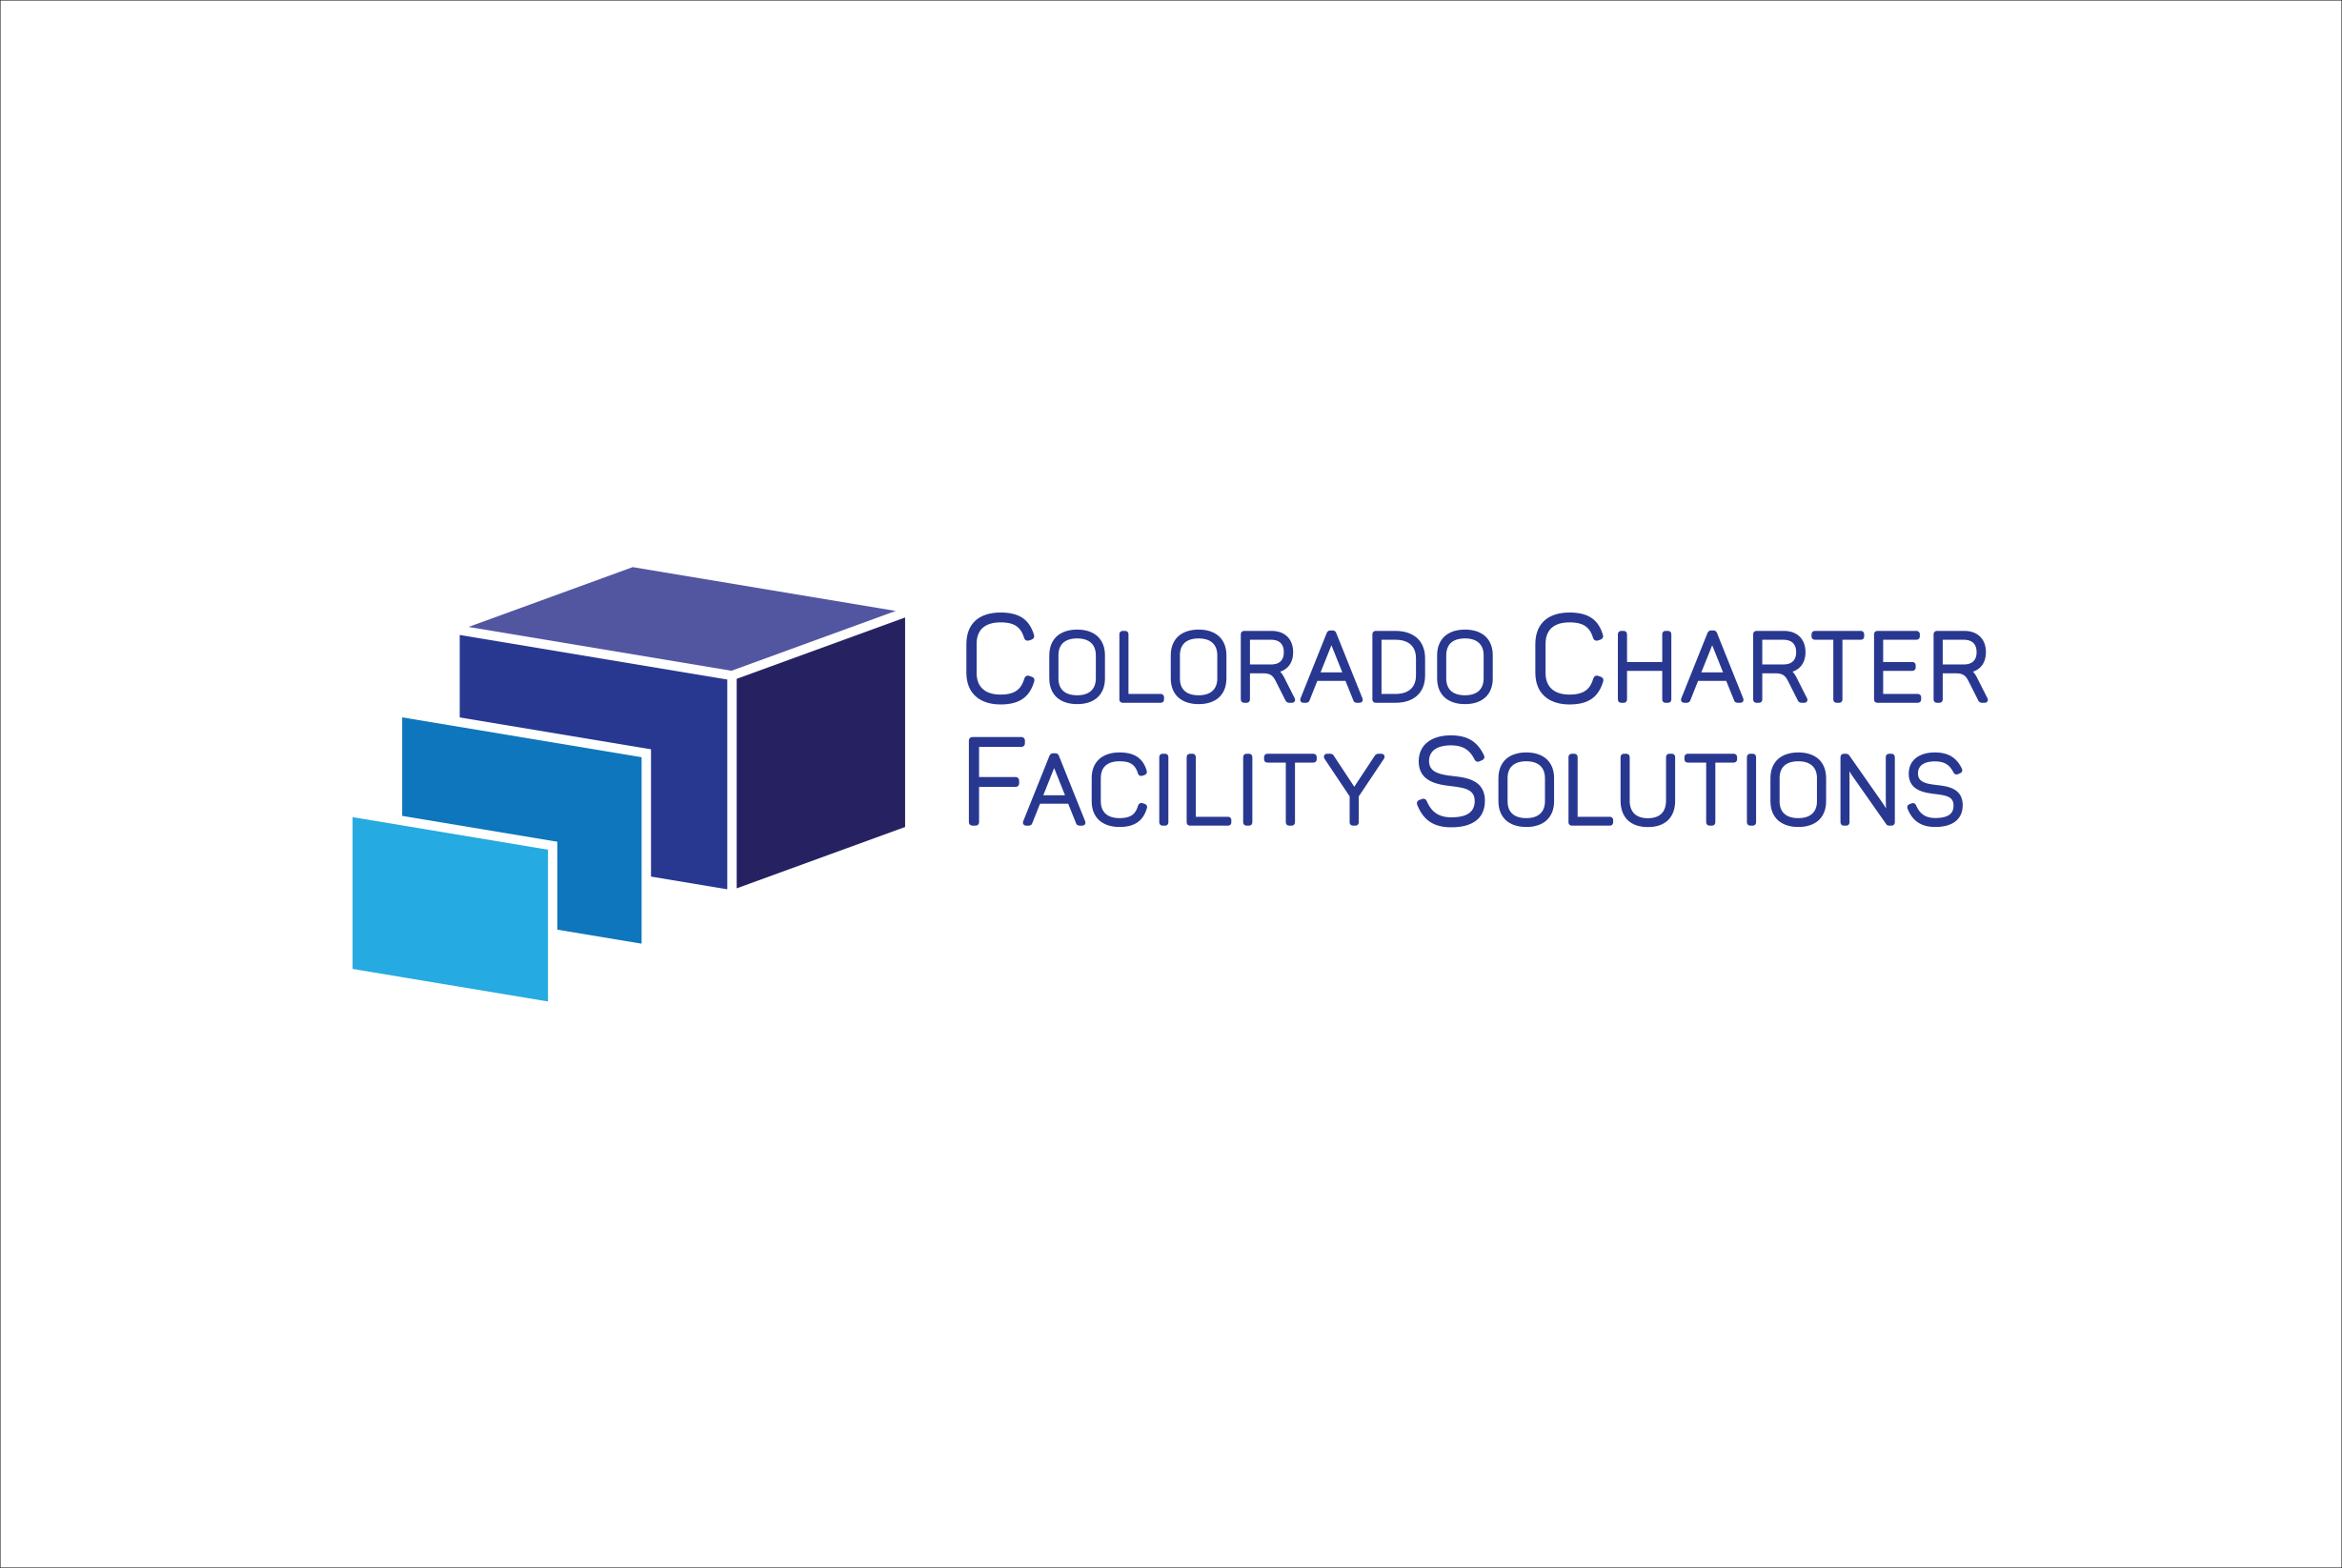 Colorado Charter Facility Solutions